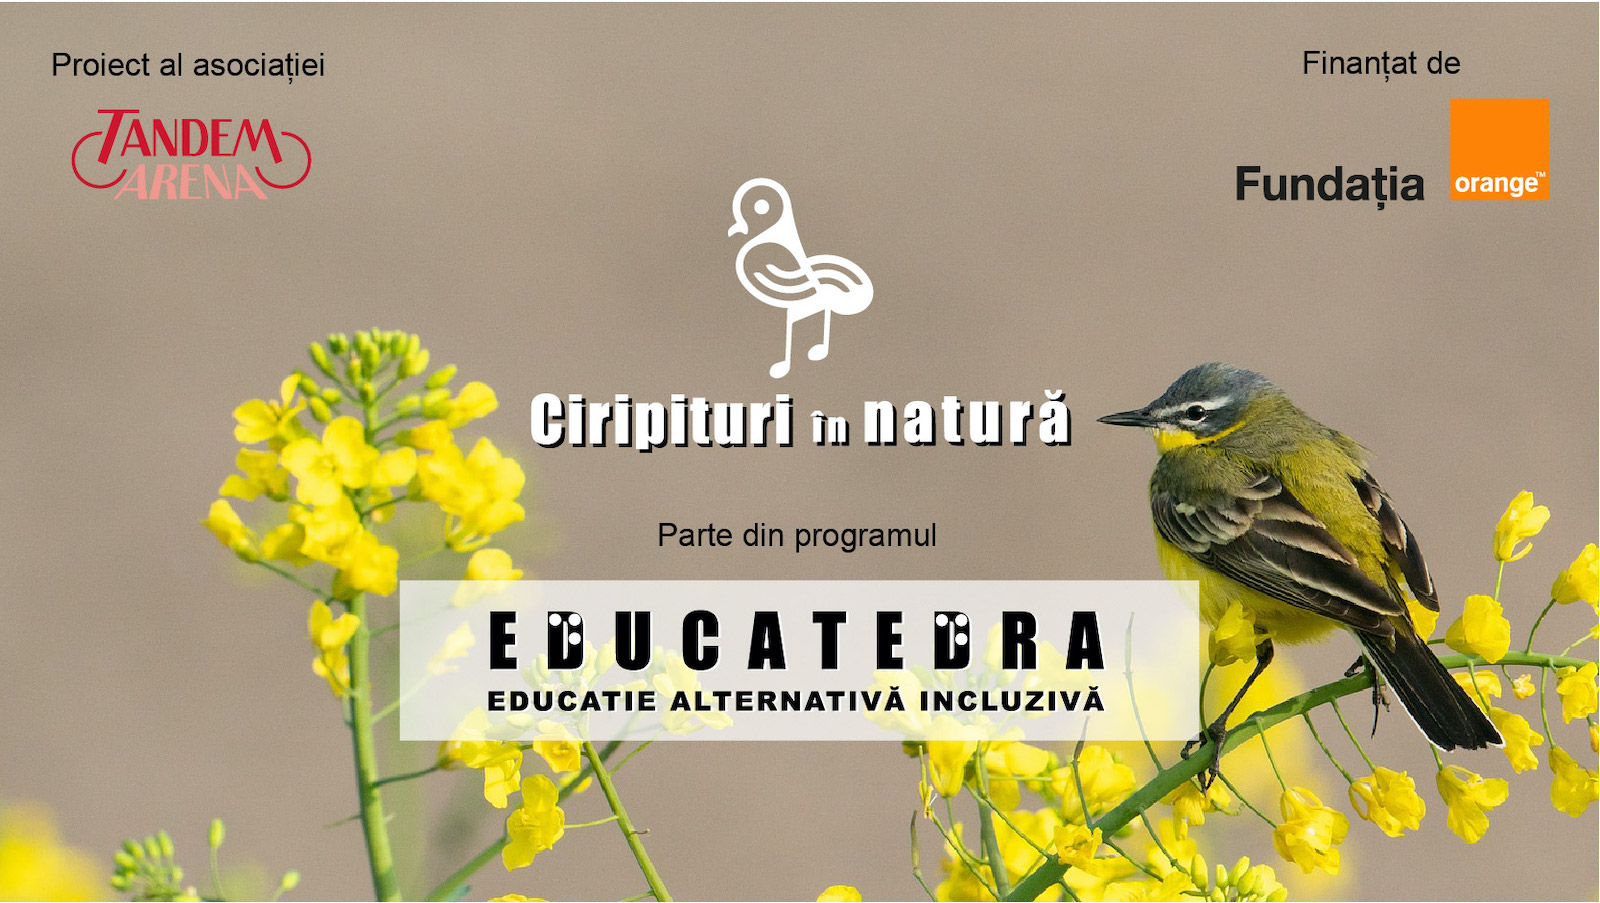 ciripituri-in-natura-fundatia-orange